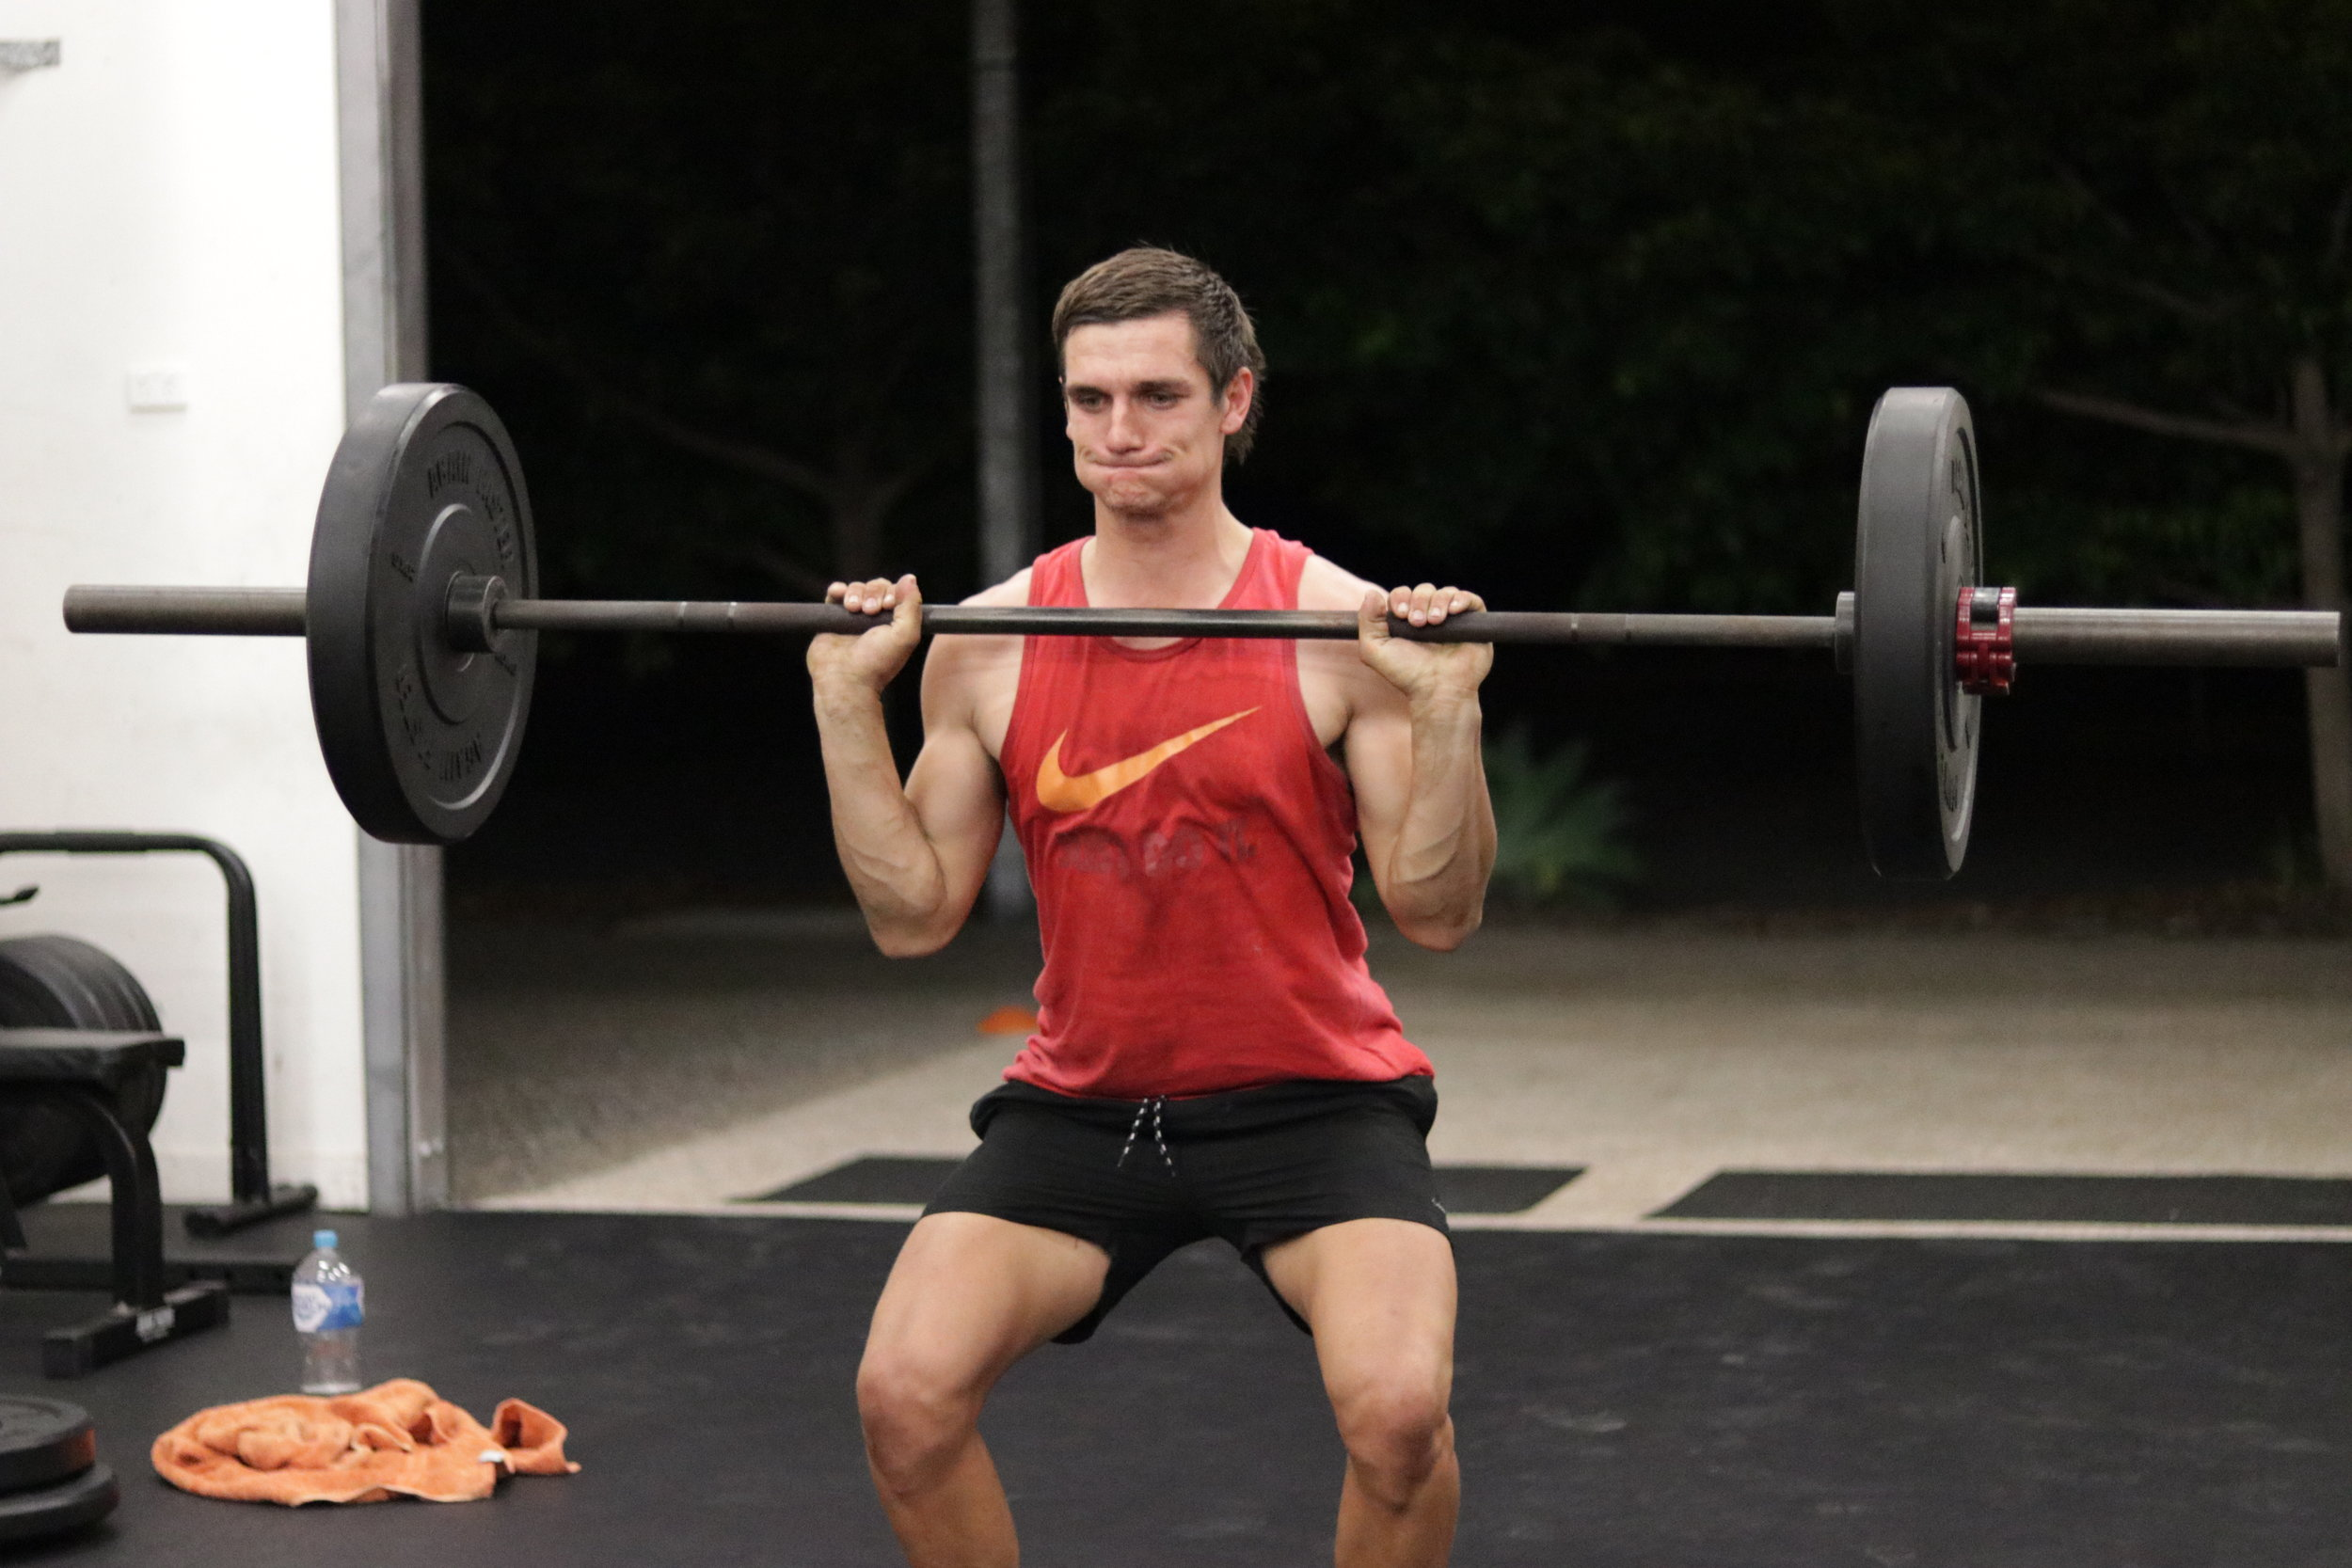 IBB - Integrated Barbell Training - Why the barbell? Squats, Deadlifts, Presses, Lunges, Cleans and Snatches that's why!